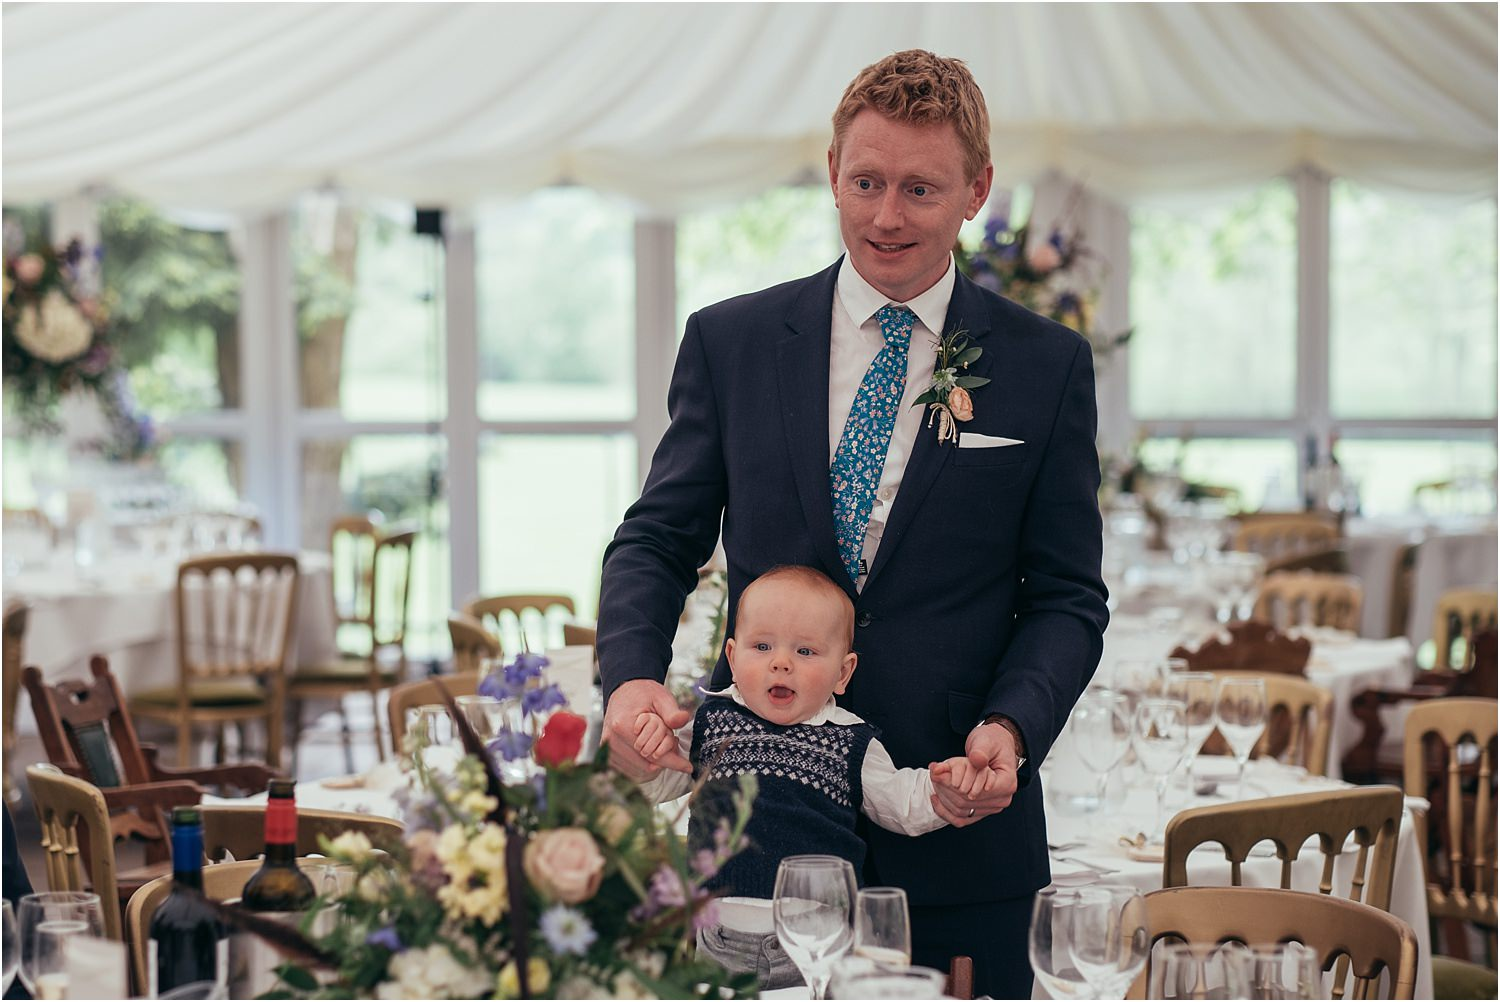 Best man and baby at Lancashire wedding reception marquee